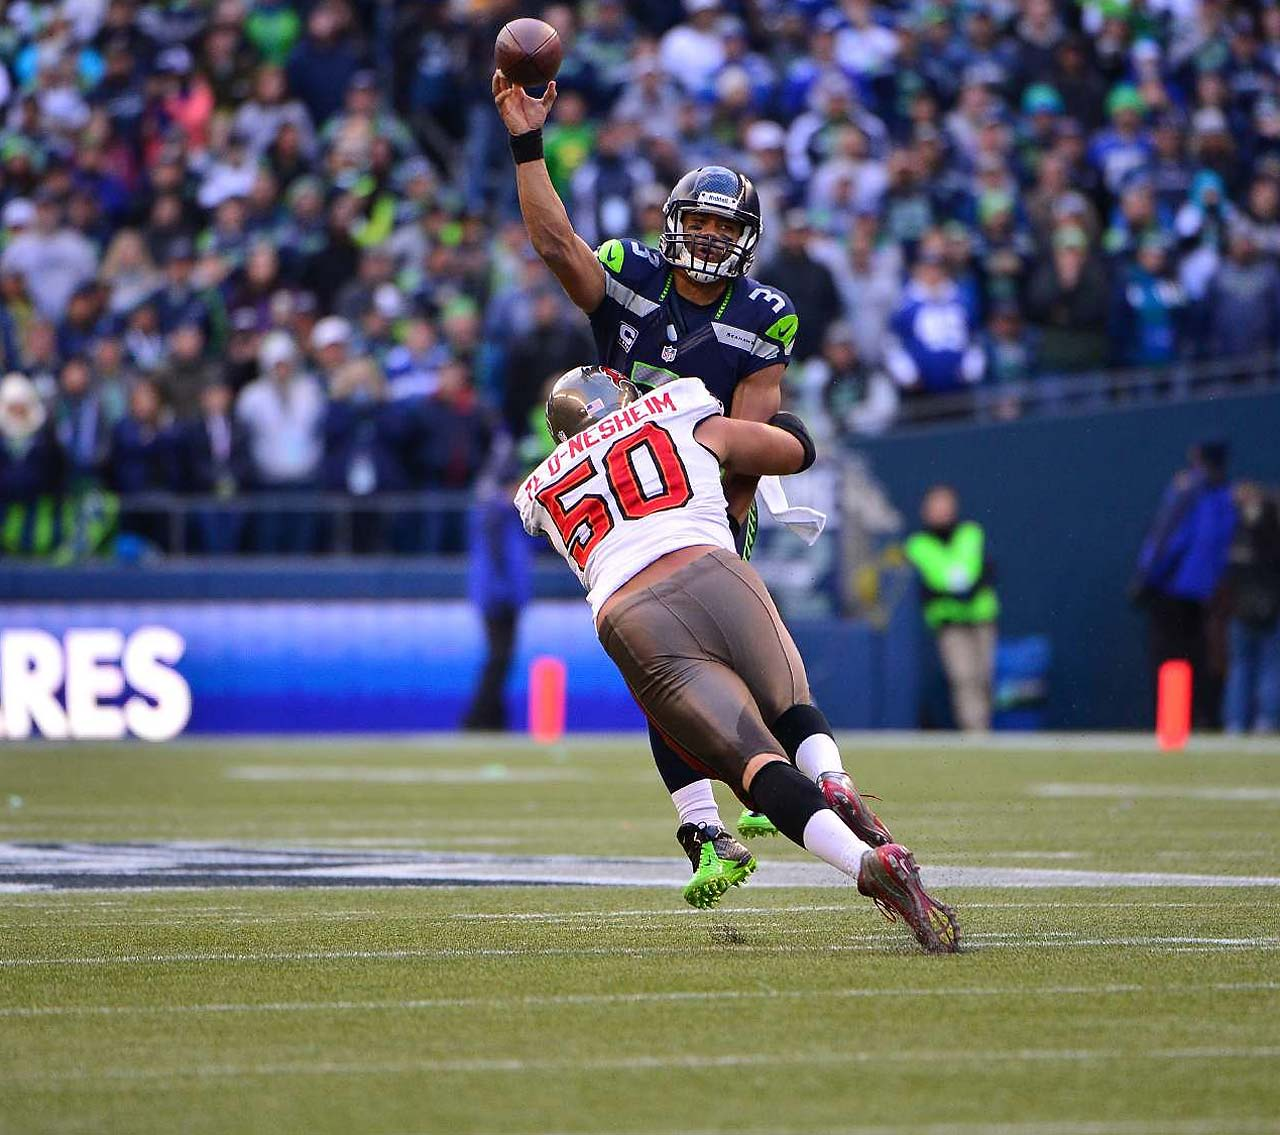 Seattle Seahawks vs. Tampa Bay Buccaneers